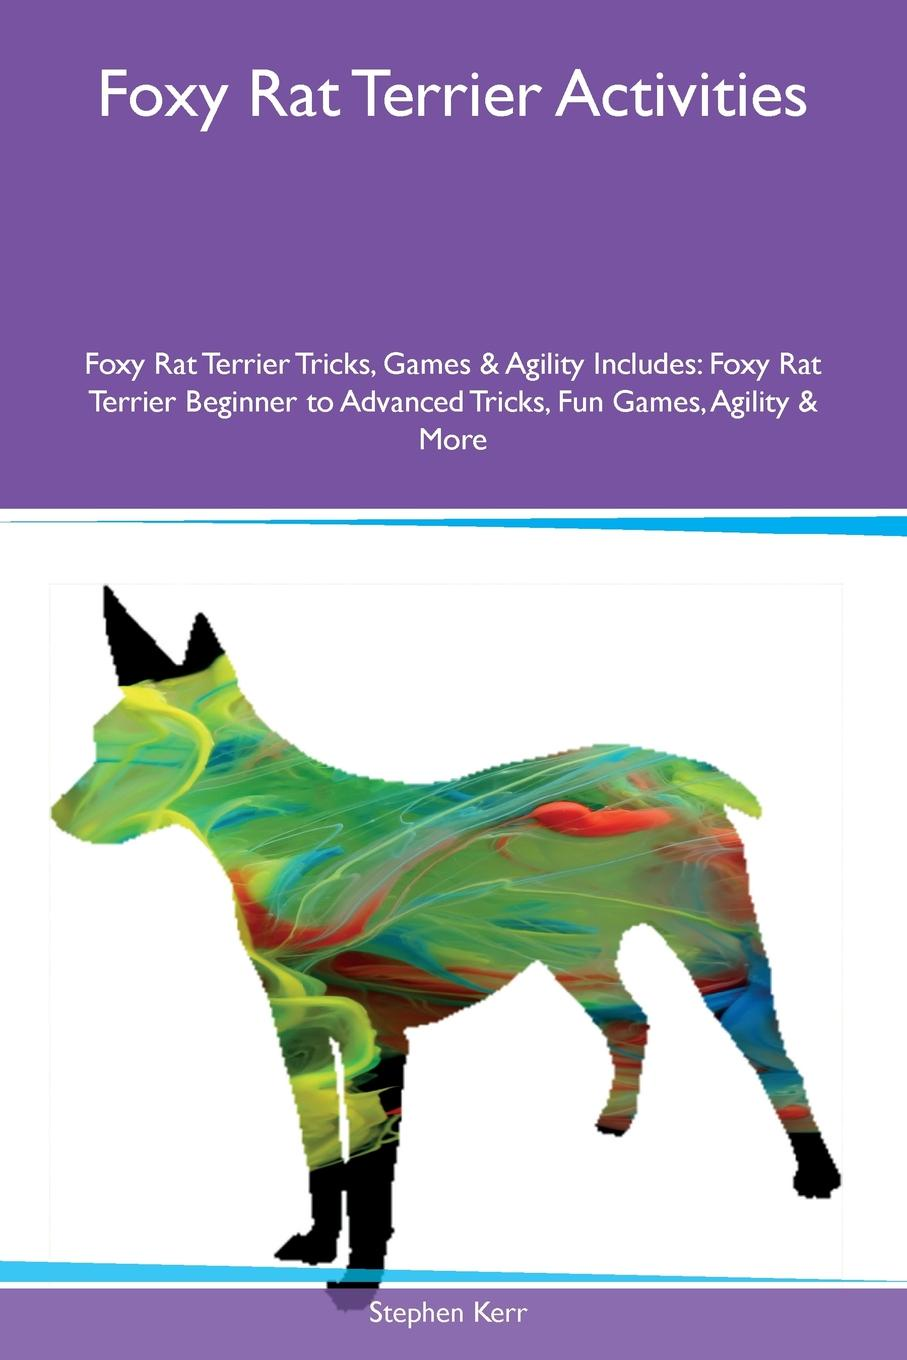 Stephen Kerr Foxy Rat Terrier Activities Foxy Rat Terrier Tricks, Games & Agility Includes. Foxy Rat Terrier Beginner to Advanced Tricks, Fun Games, Agility & More the rat brain in stereotaxic coordinates